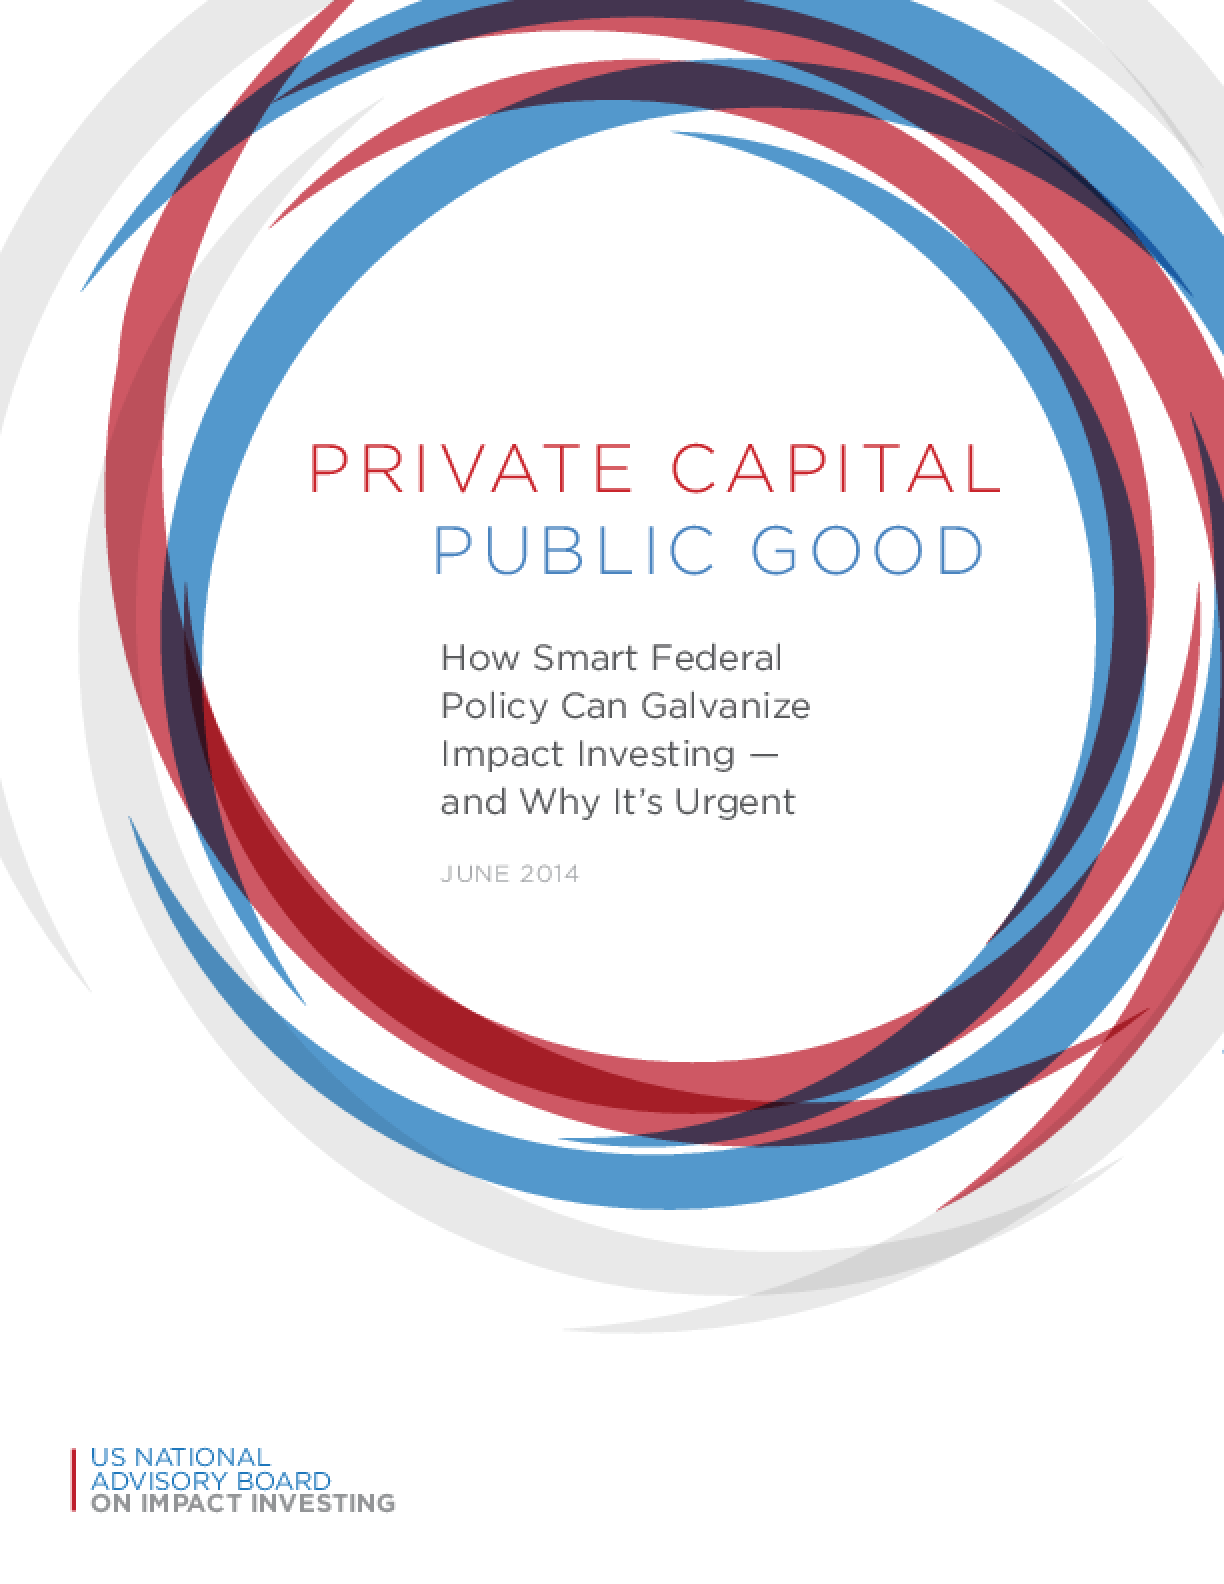 Private Capital - Public Good : How Smart Federal Policy Can Galvanize Impact Investing - and Why It's Urgent